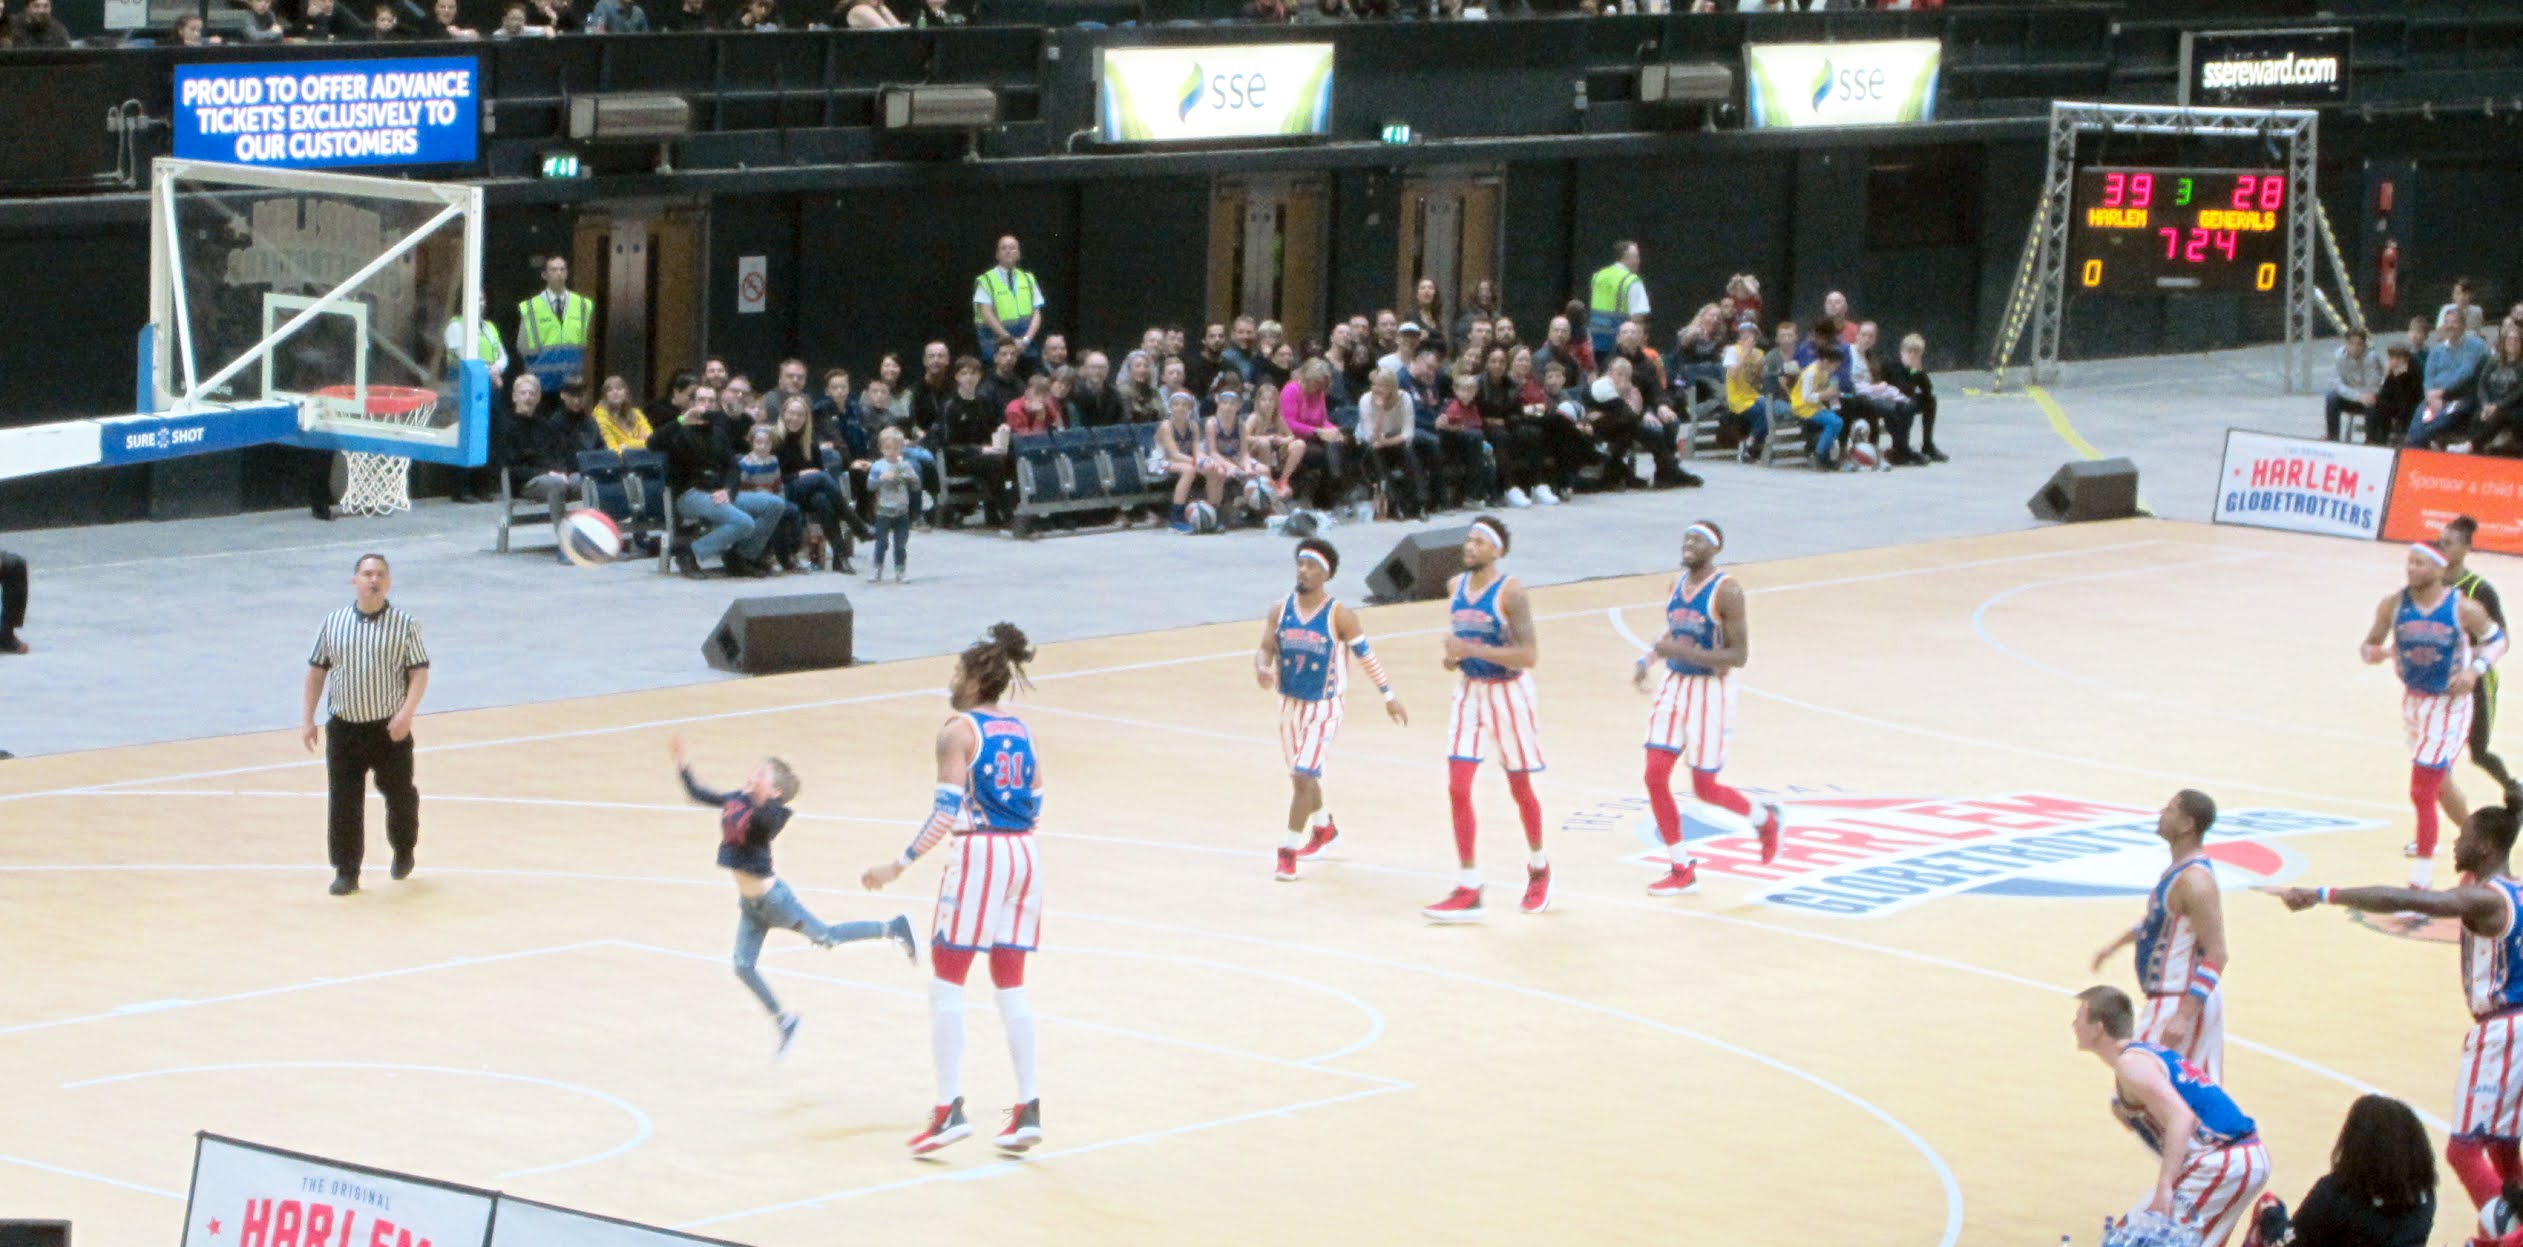 Crowd member takes a shot during the Harlem Globetrotters game